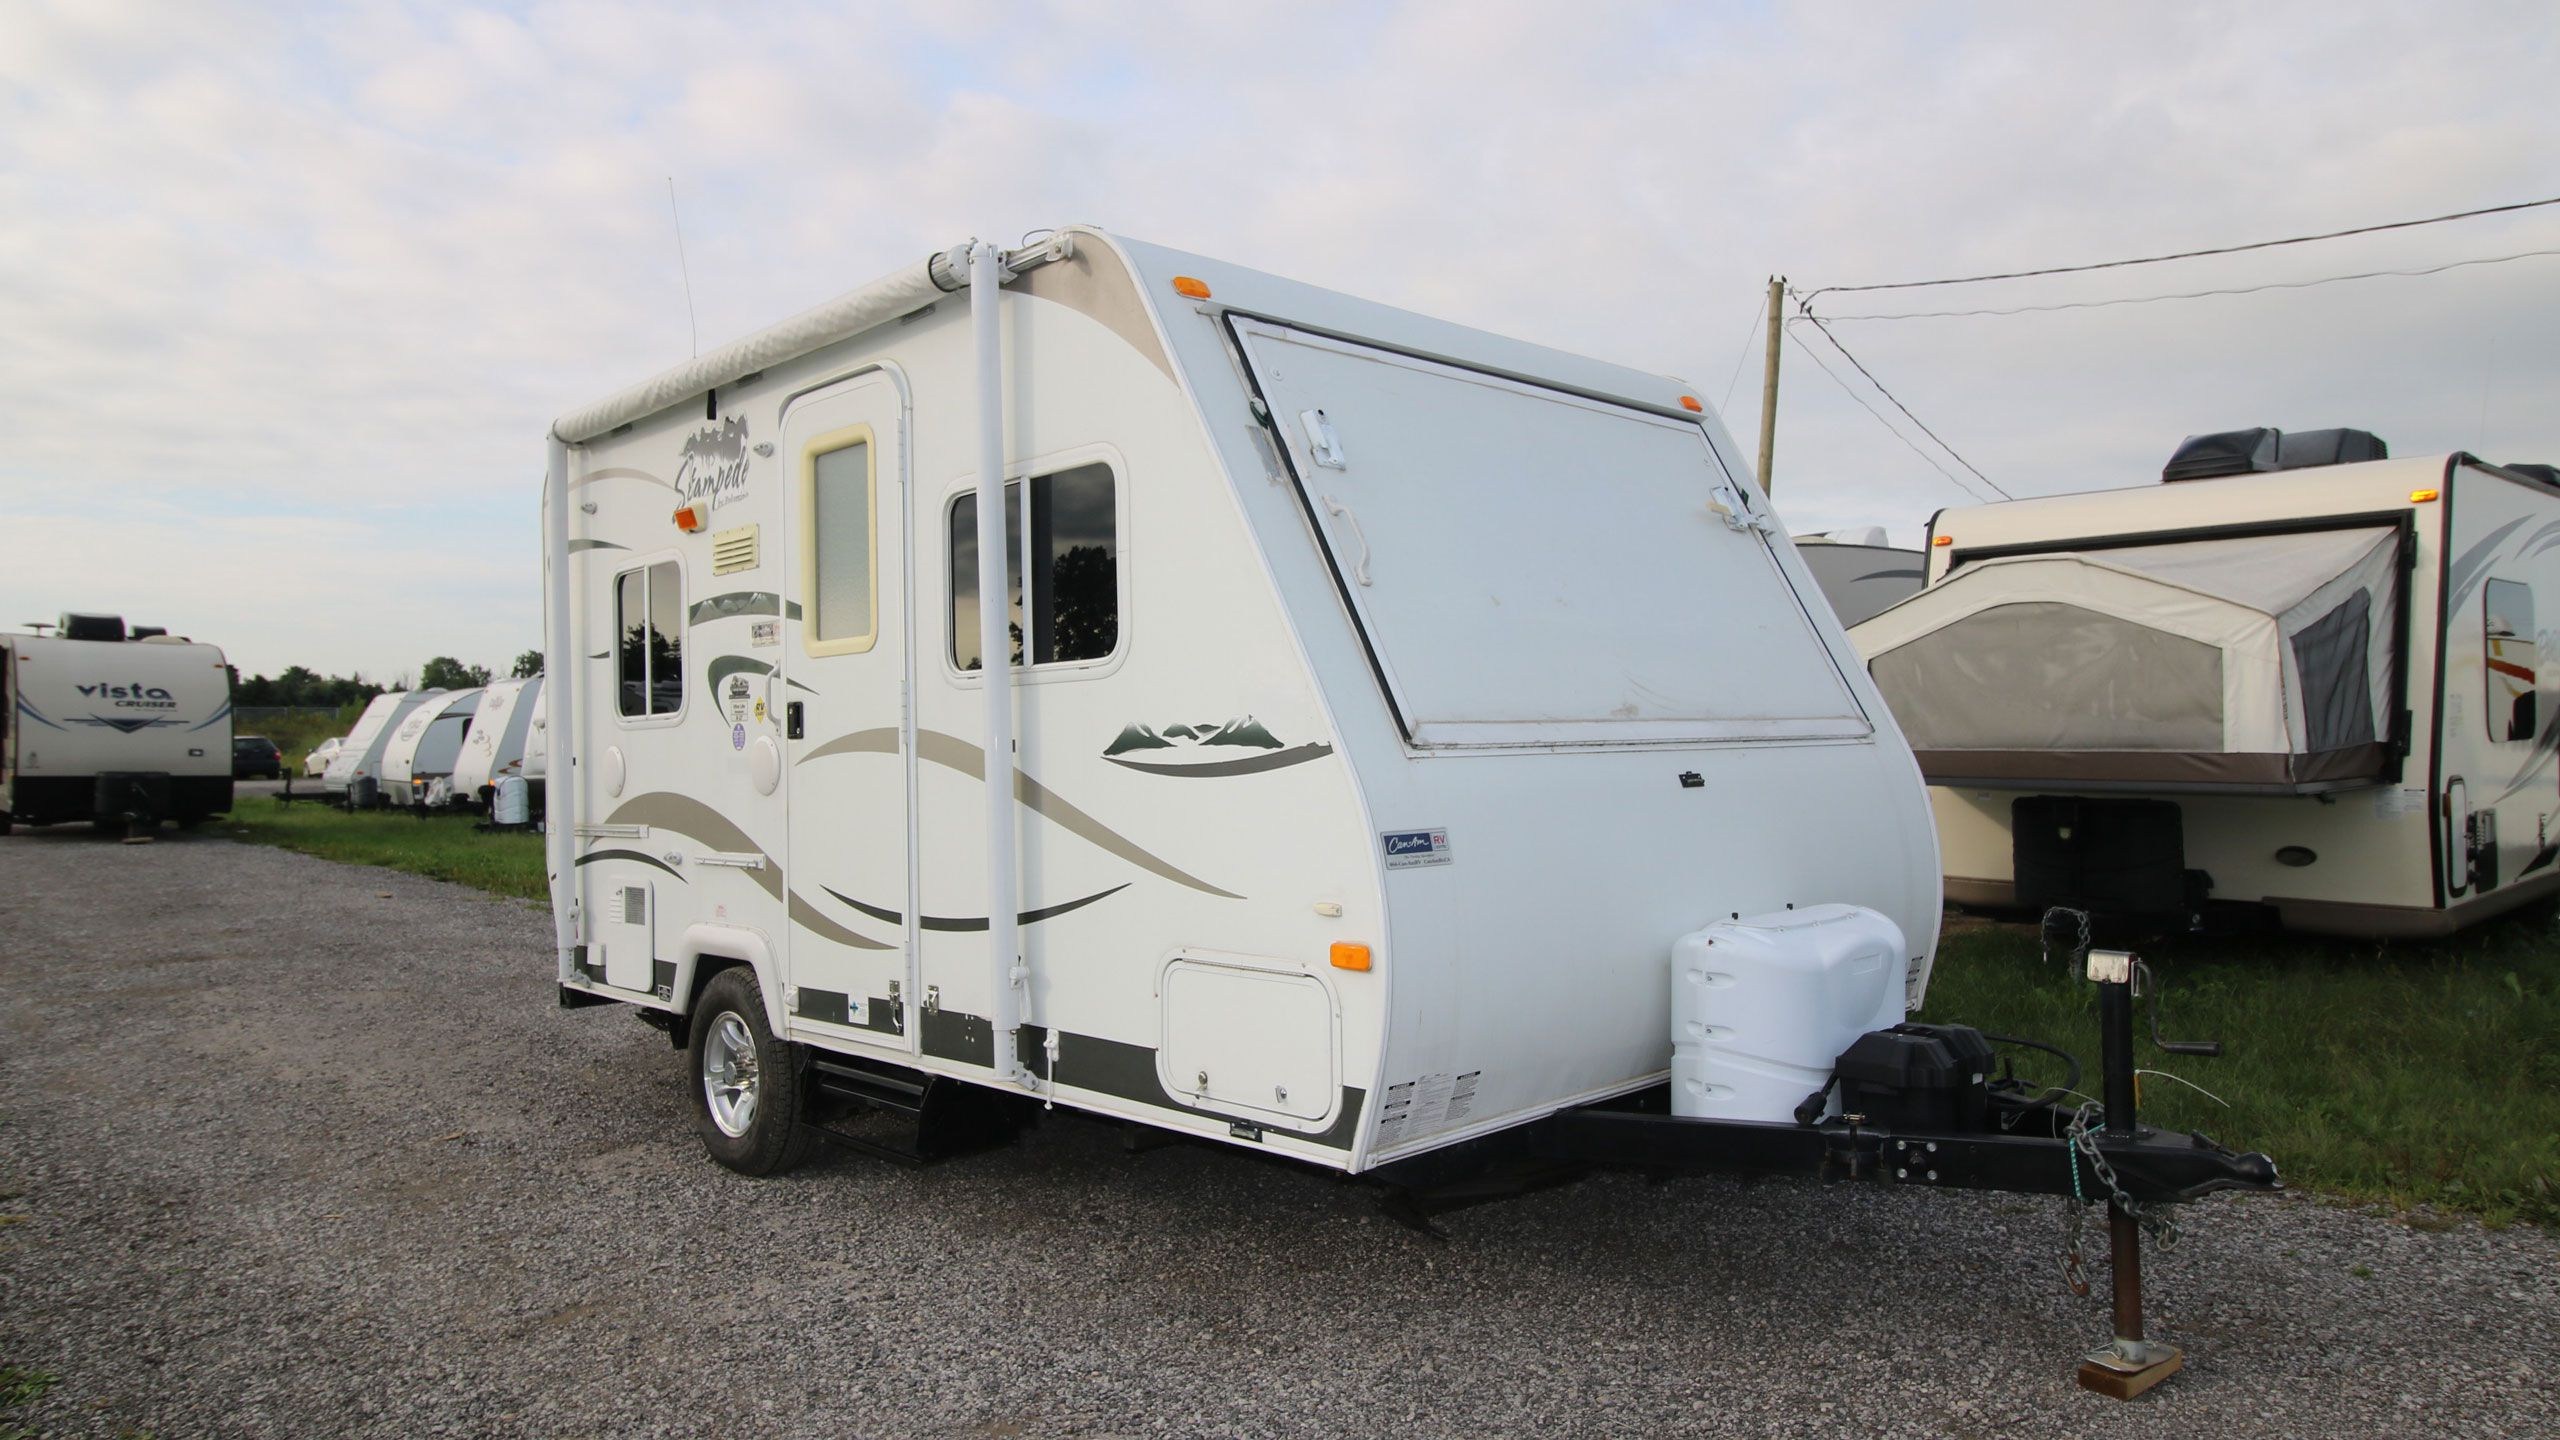 View Can-Am RV Centre RVs for sale | 1 - 3 of 3 units